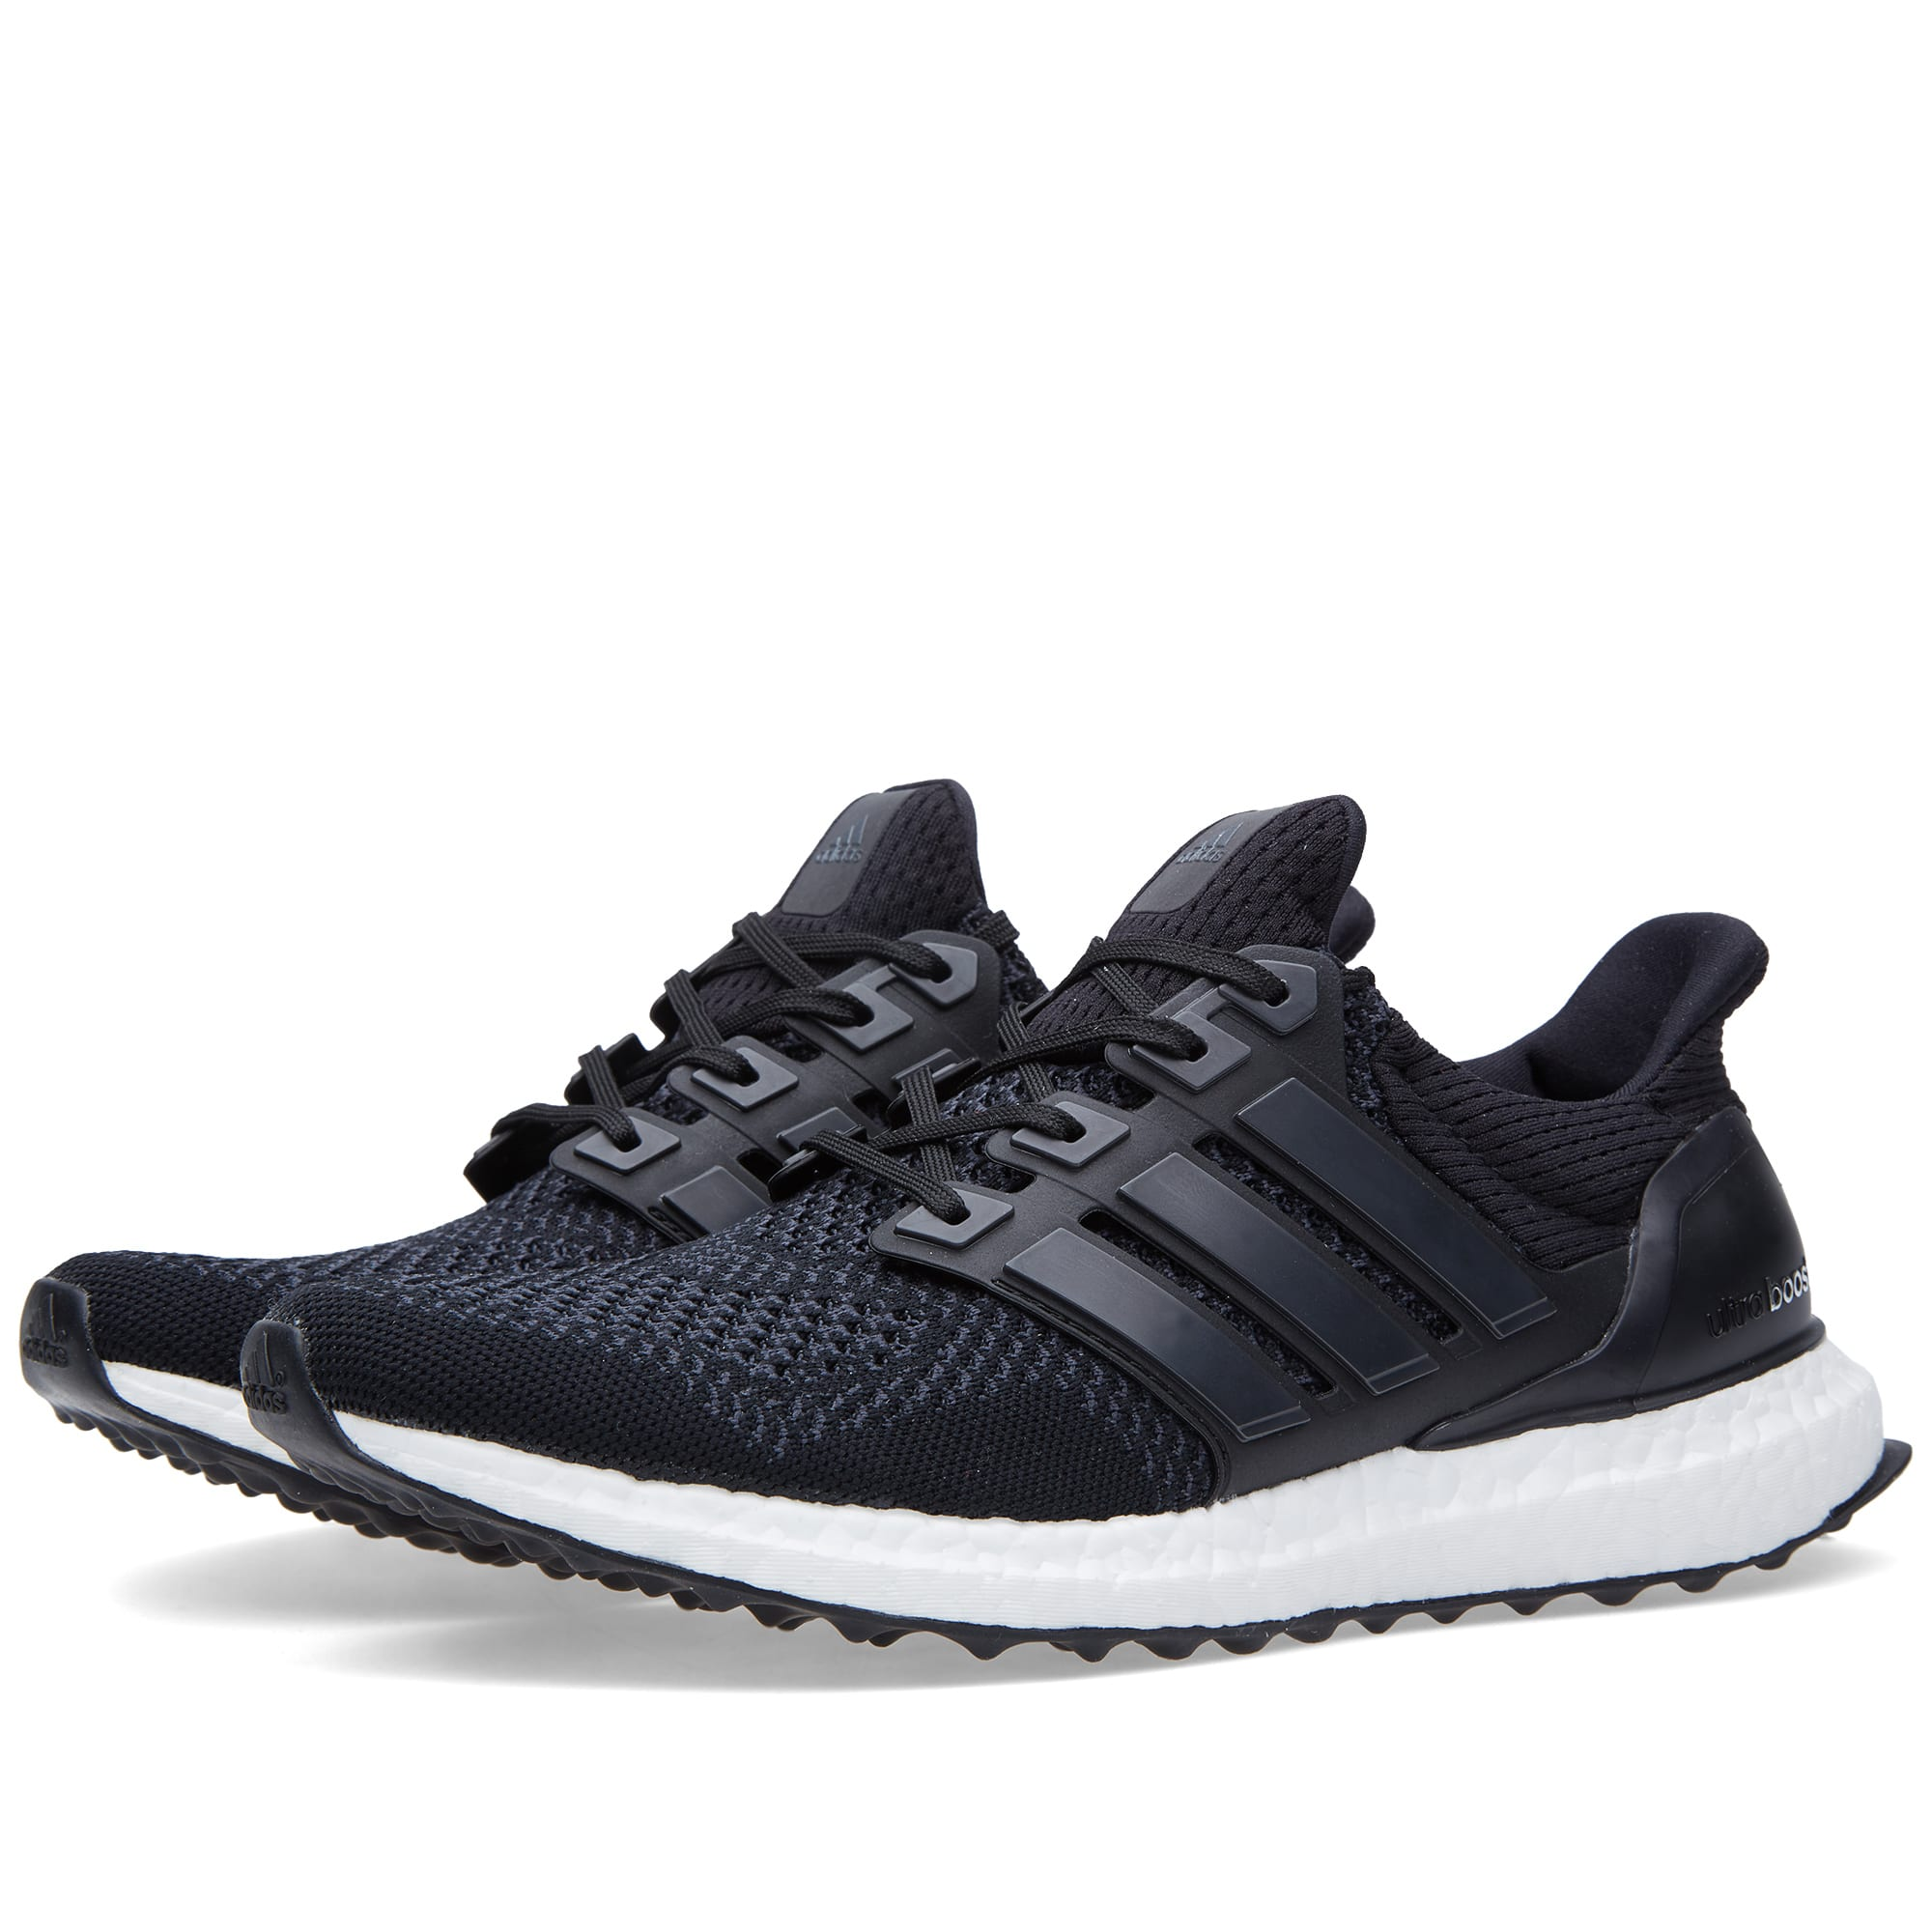 5977729cf7365 Adidas Ultra Boost M Core Black   White